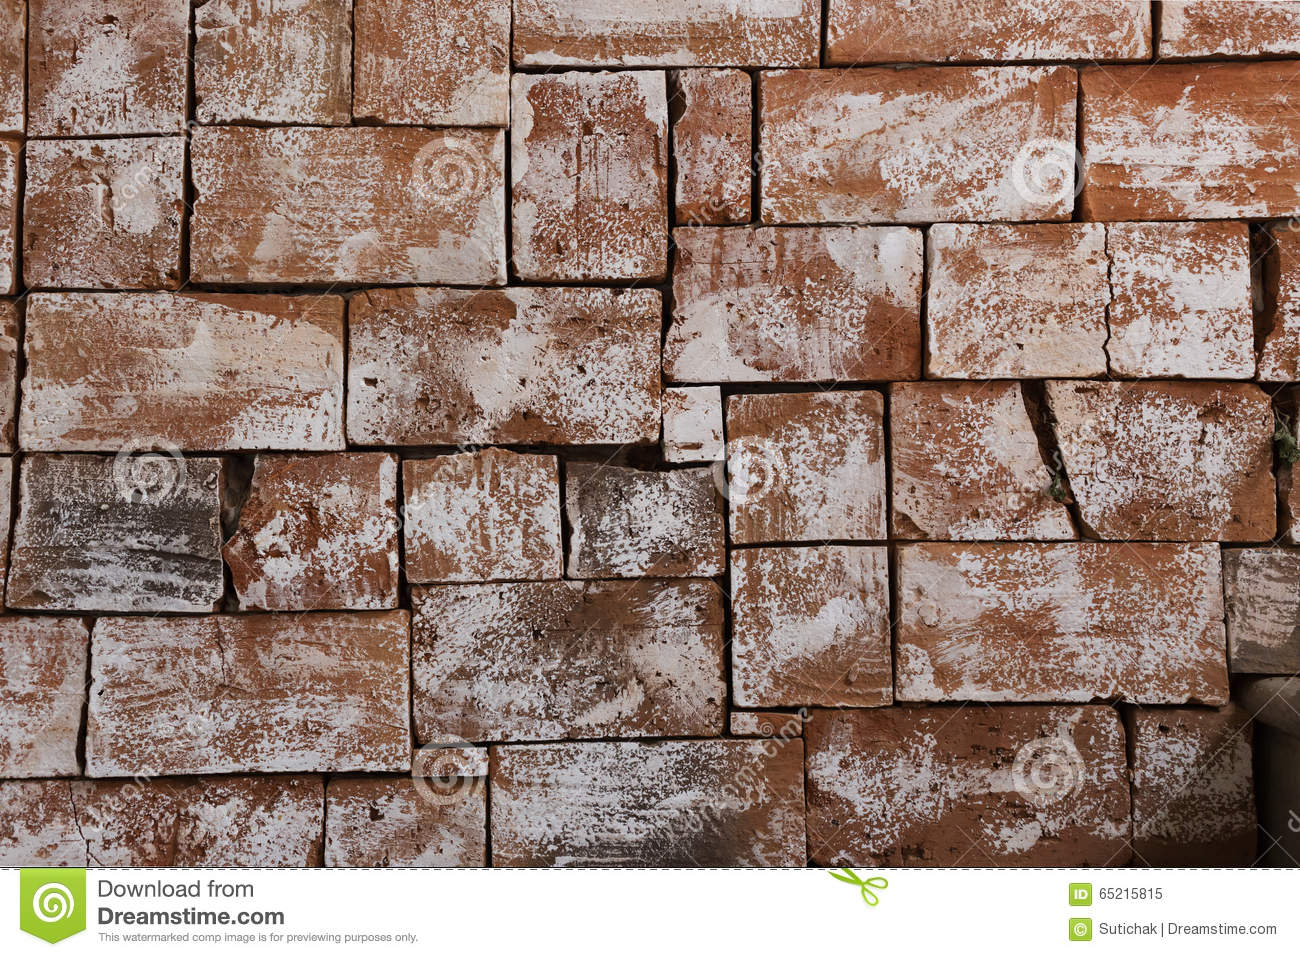 brick wall design of interior wallpaper stock photo - Brick Wall Design